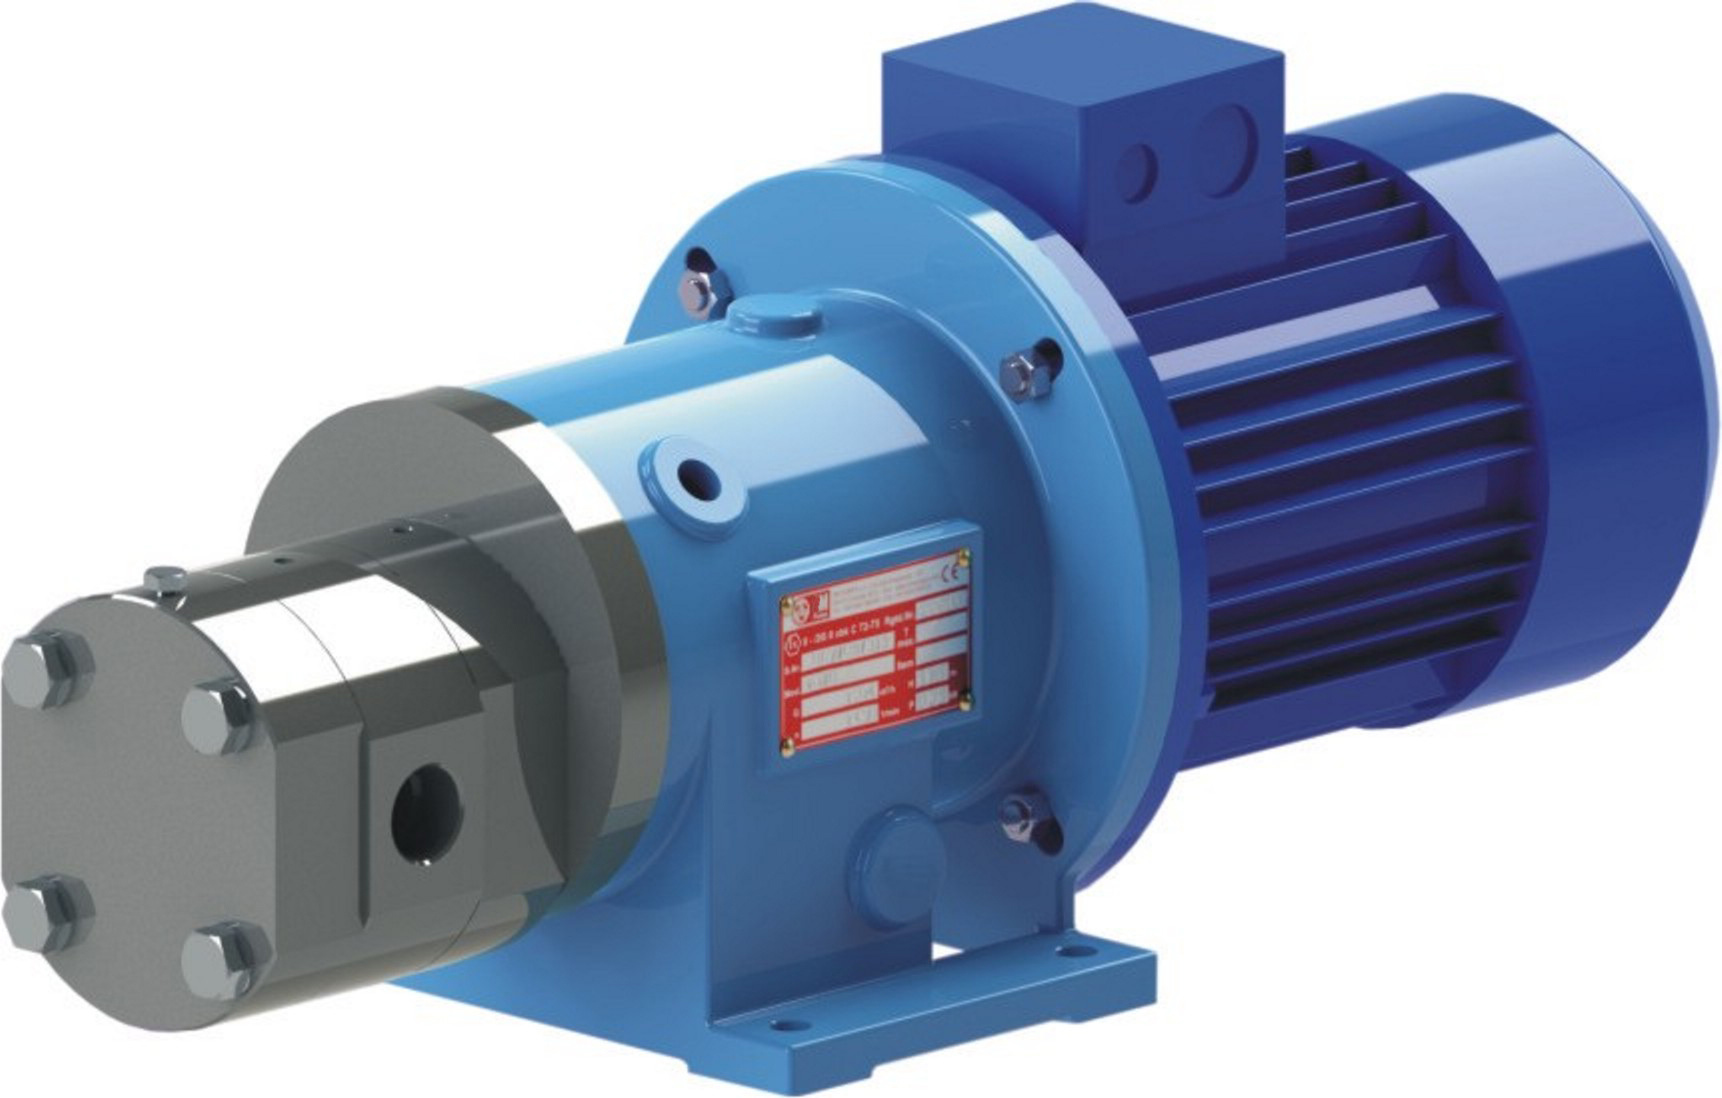 Common Uses for Gear Pumps